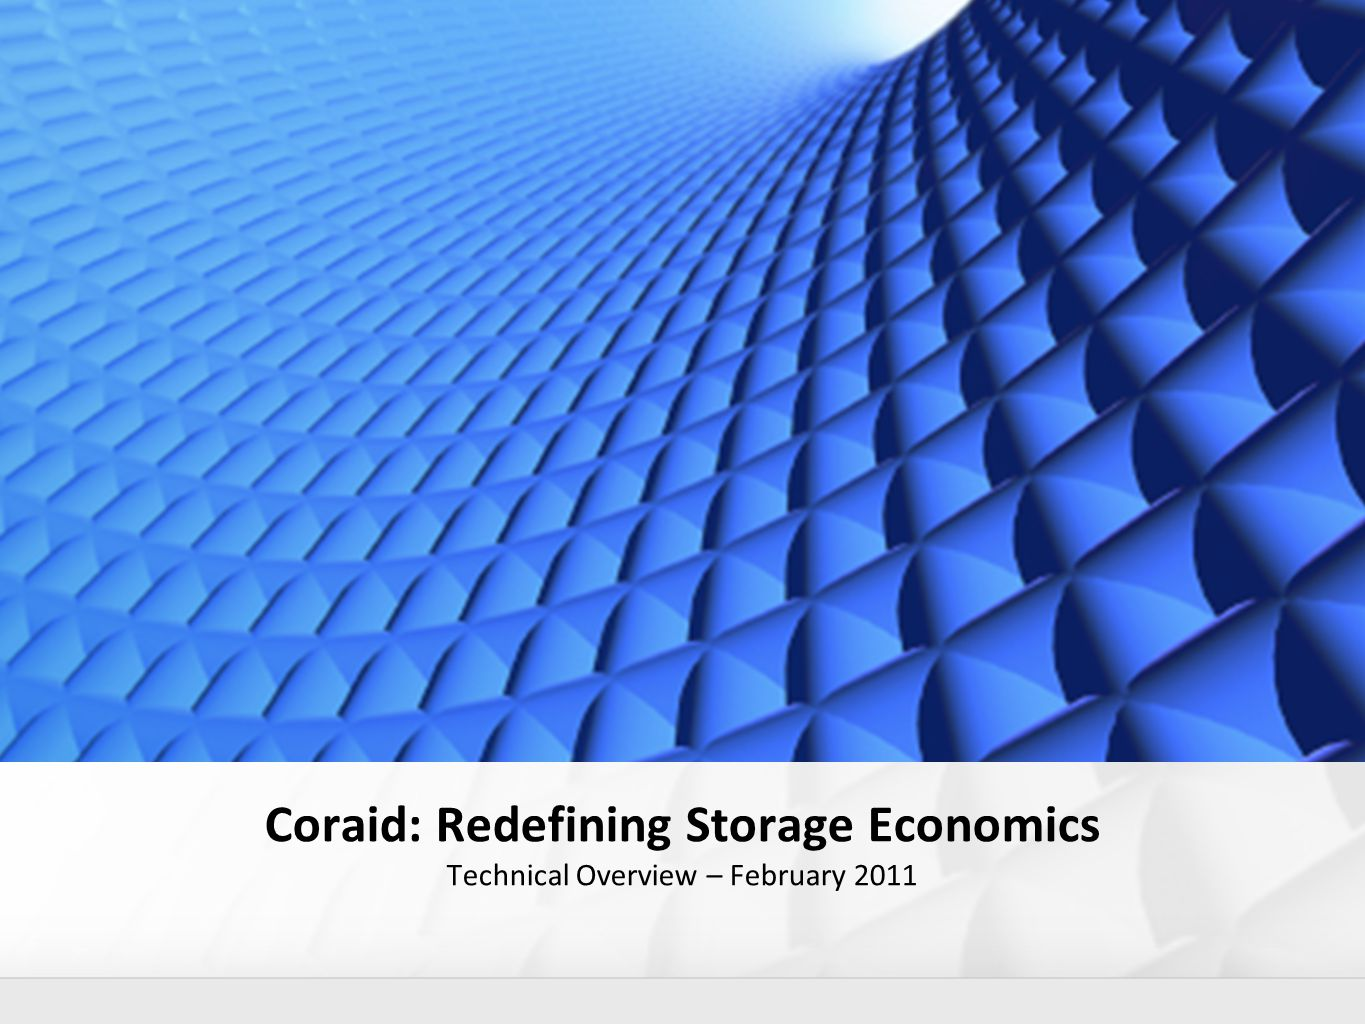 Redefining Storage Economics CORAID: Redefining Storage Economics Confidential Analyst Presentation - January 2010 Coraid: Redefining Storage Economics Technical Overview – February 2011